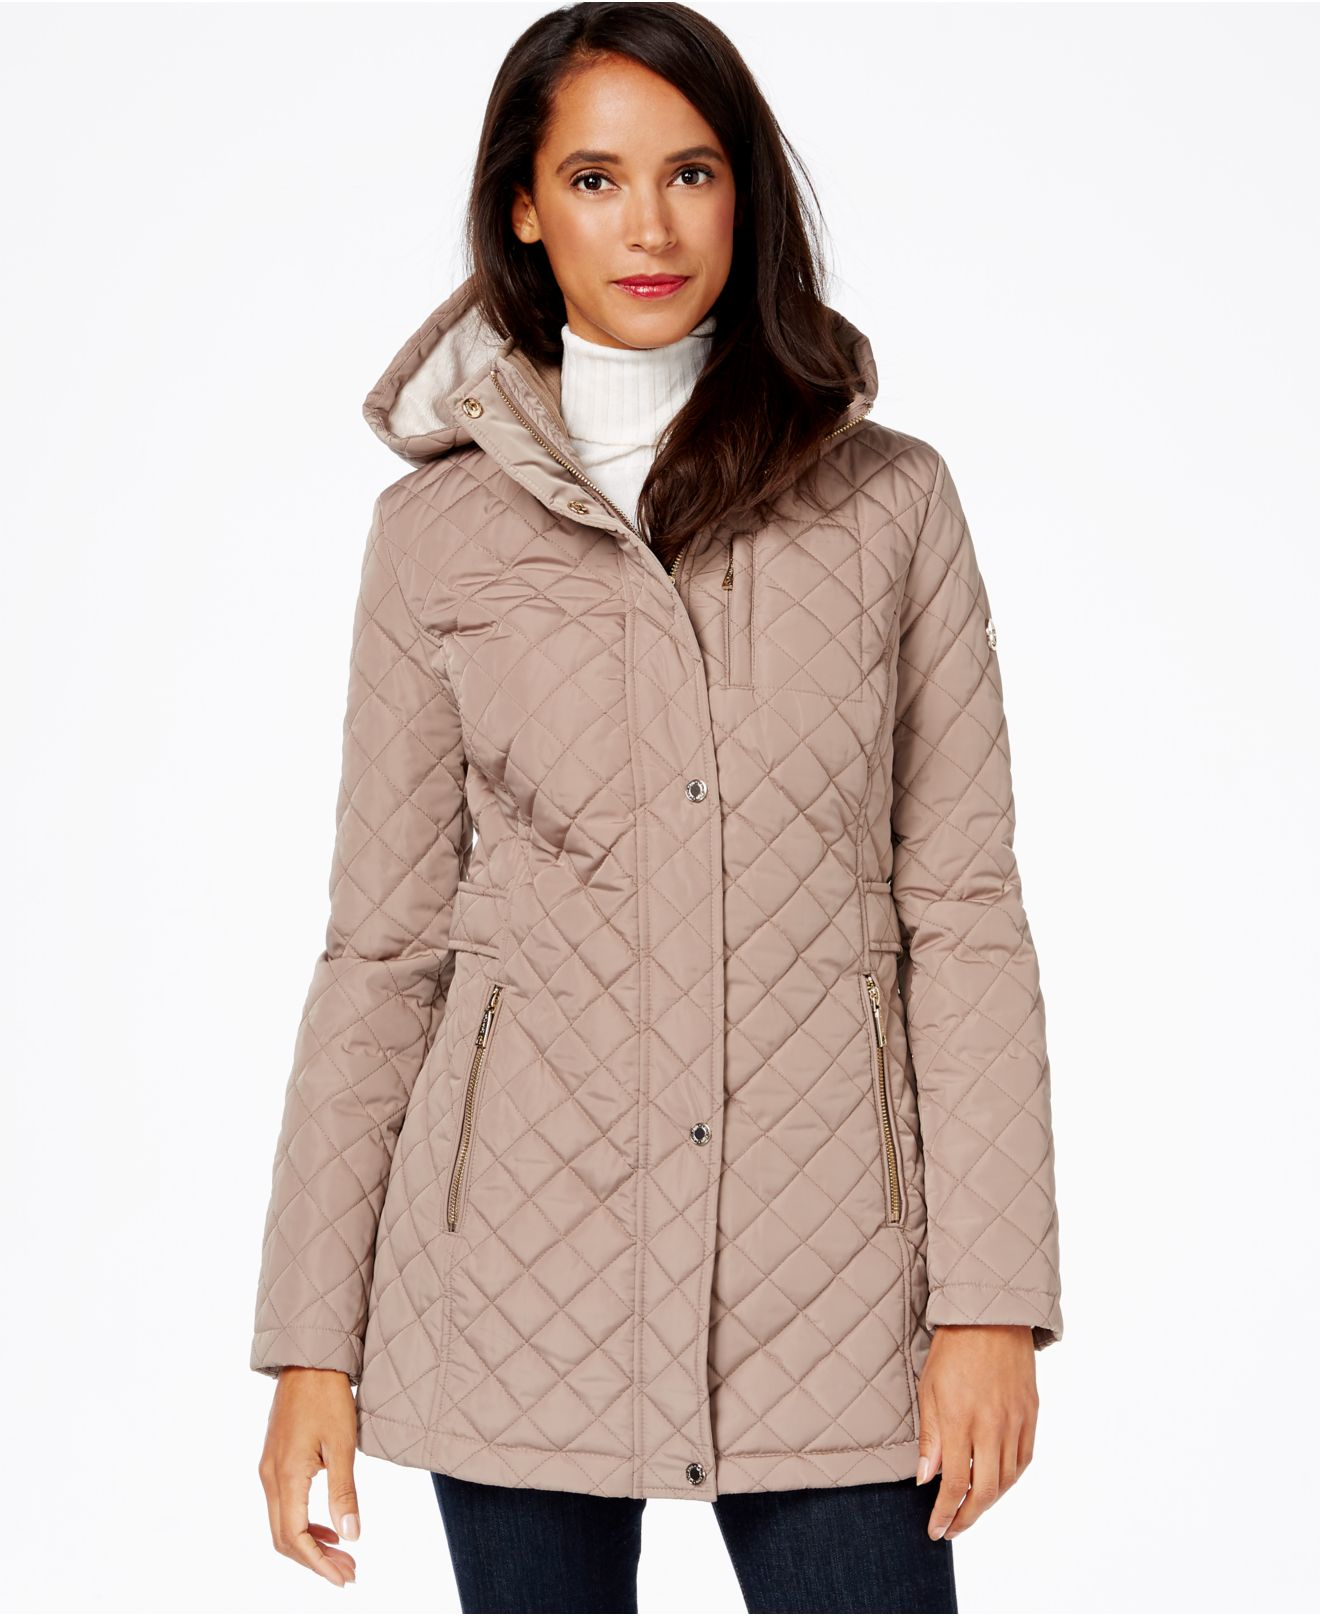 Lyst - Calvin klein Hooded Quilted Jacket in Gray : quilted hooded jacket - Adamdwight.com